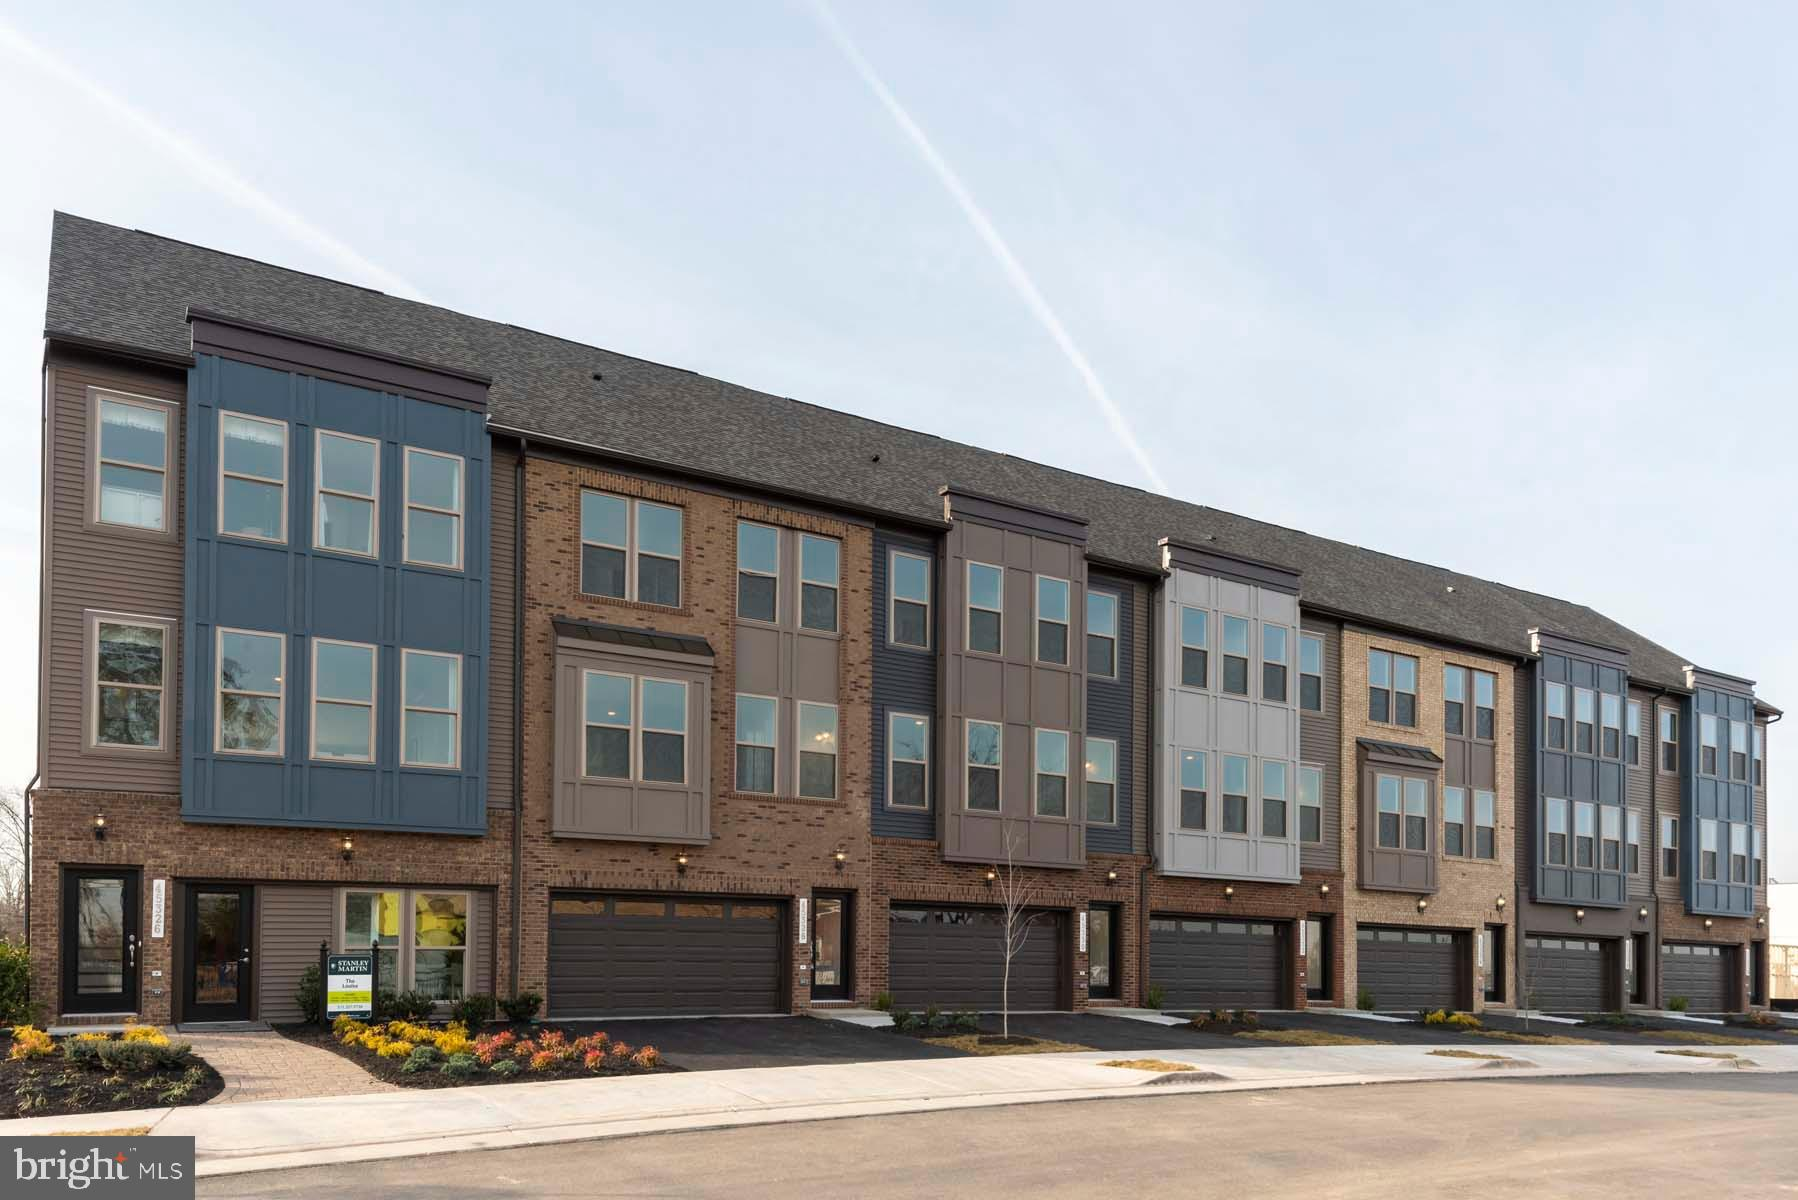 BRAND NEW HOMES! Location, location, location! Everything you could want or need is near by at Domin